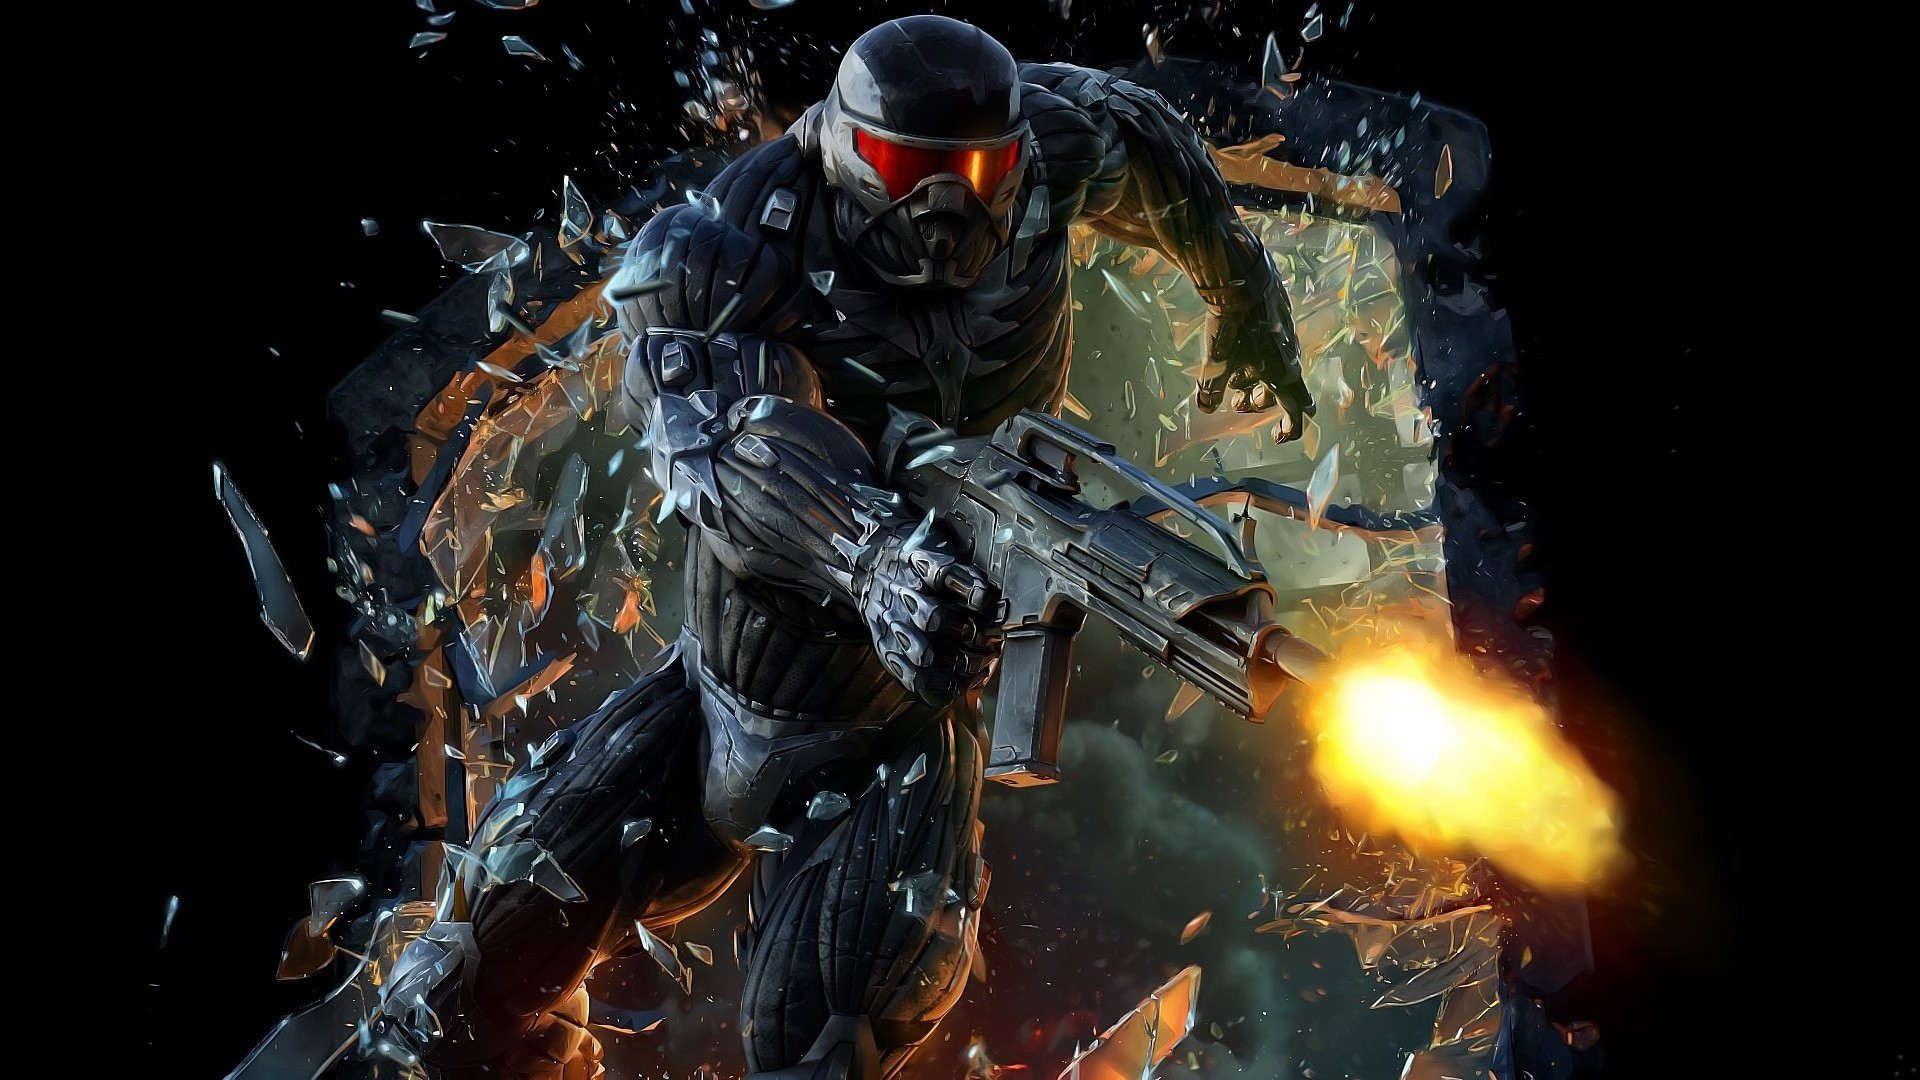 Related Wallpapers. halo 5 images